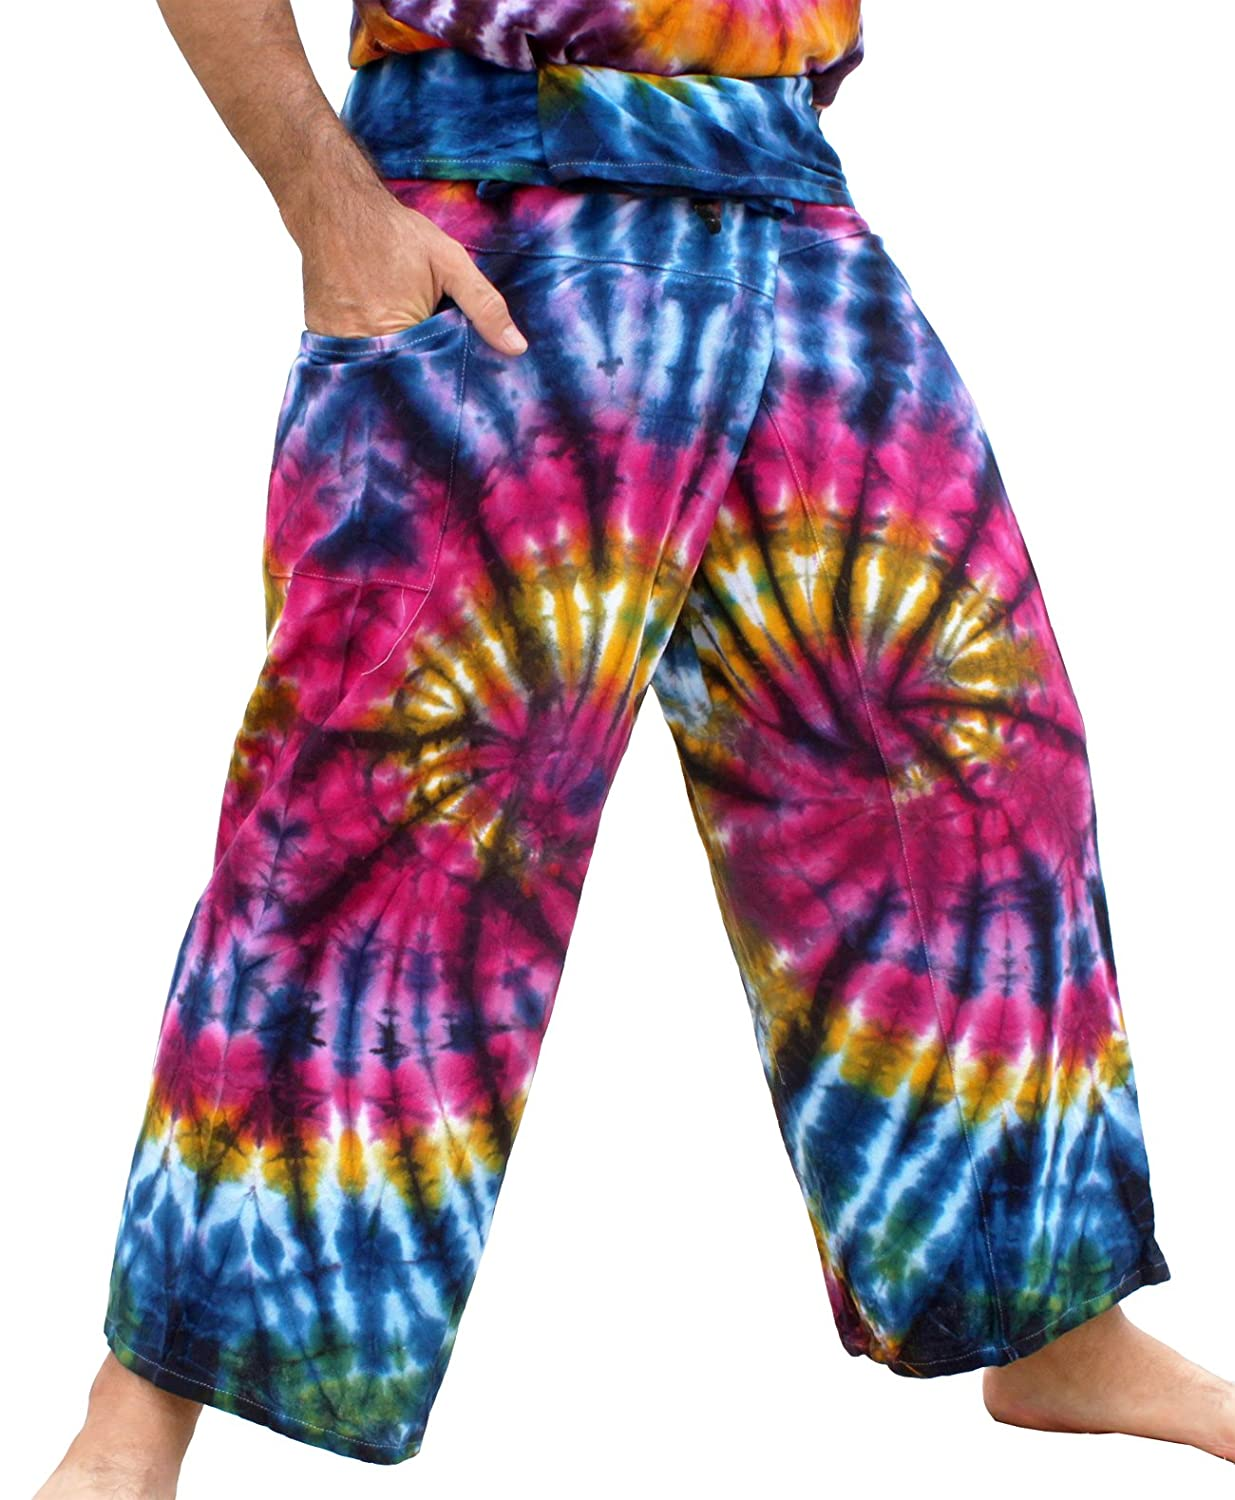 bluee Pink Amazon Dreams RaanPahMuang Thick Muang Cotton Thai Fishermans Pants Vibrant TieDyed Tie Dye